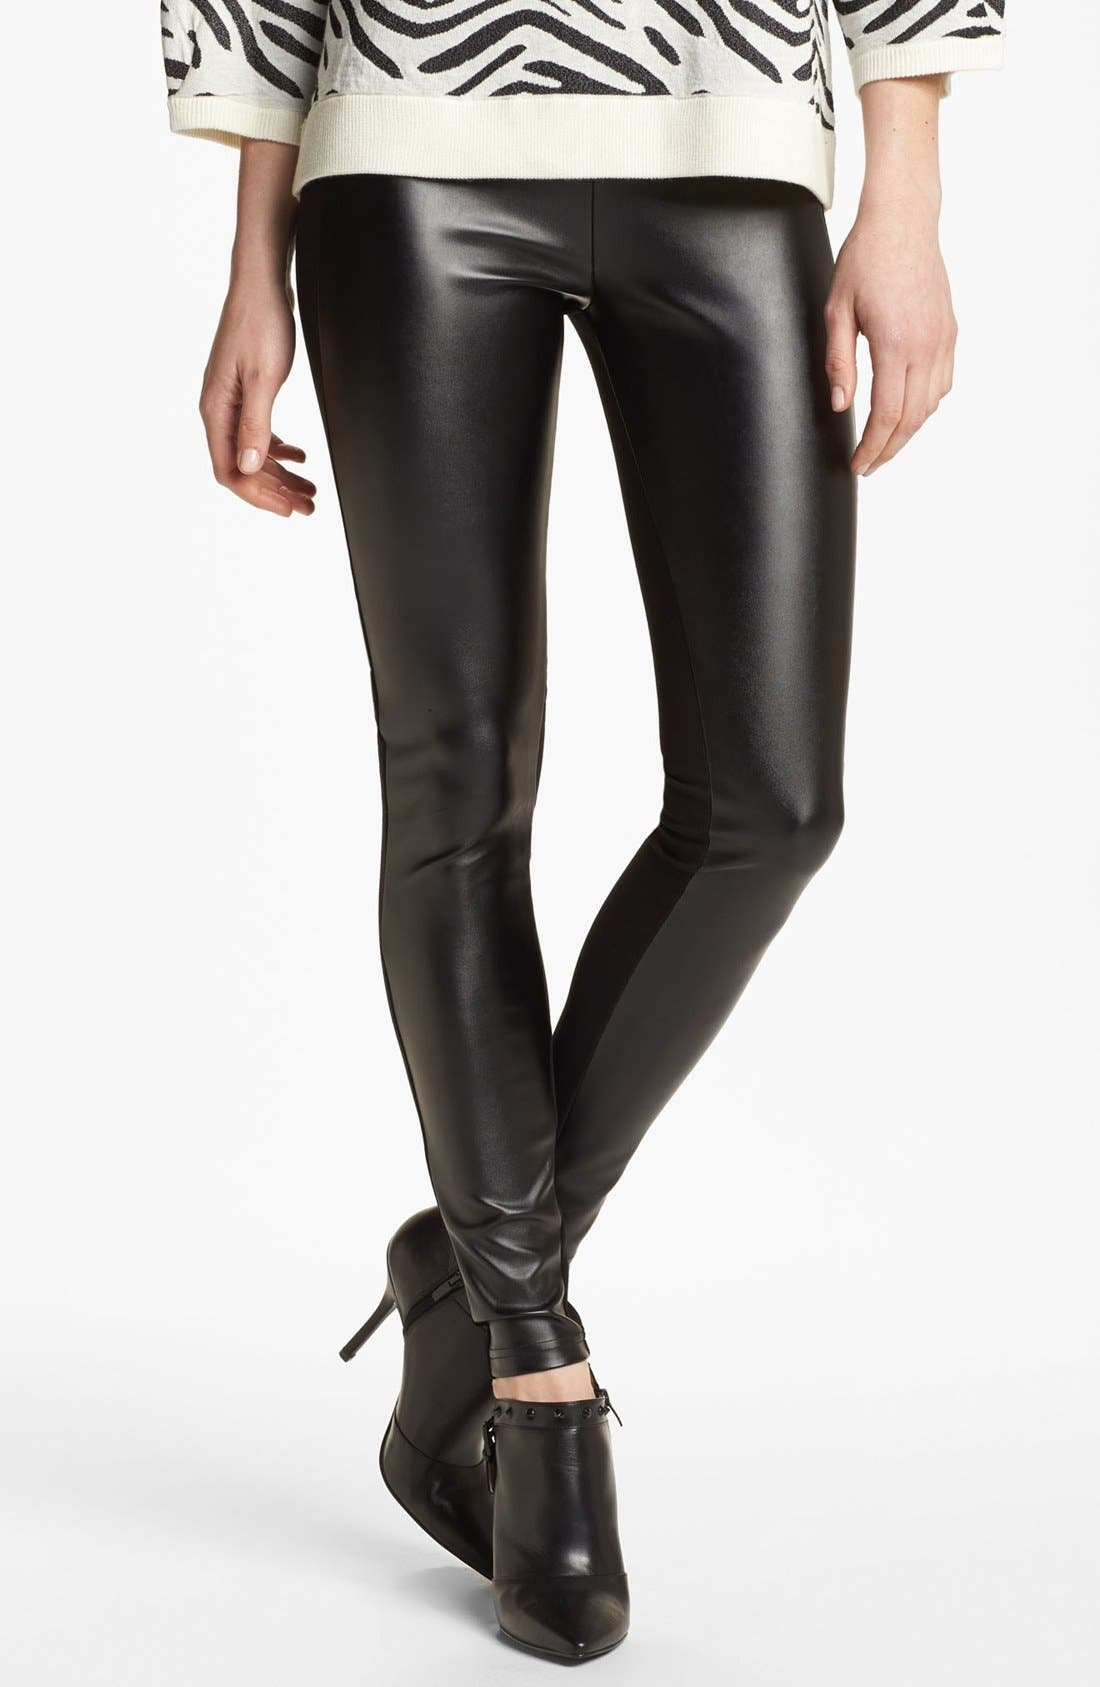 Main Image - Nordstrom 'Double Trouble' Knit & Faux Leather Leggings